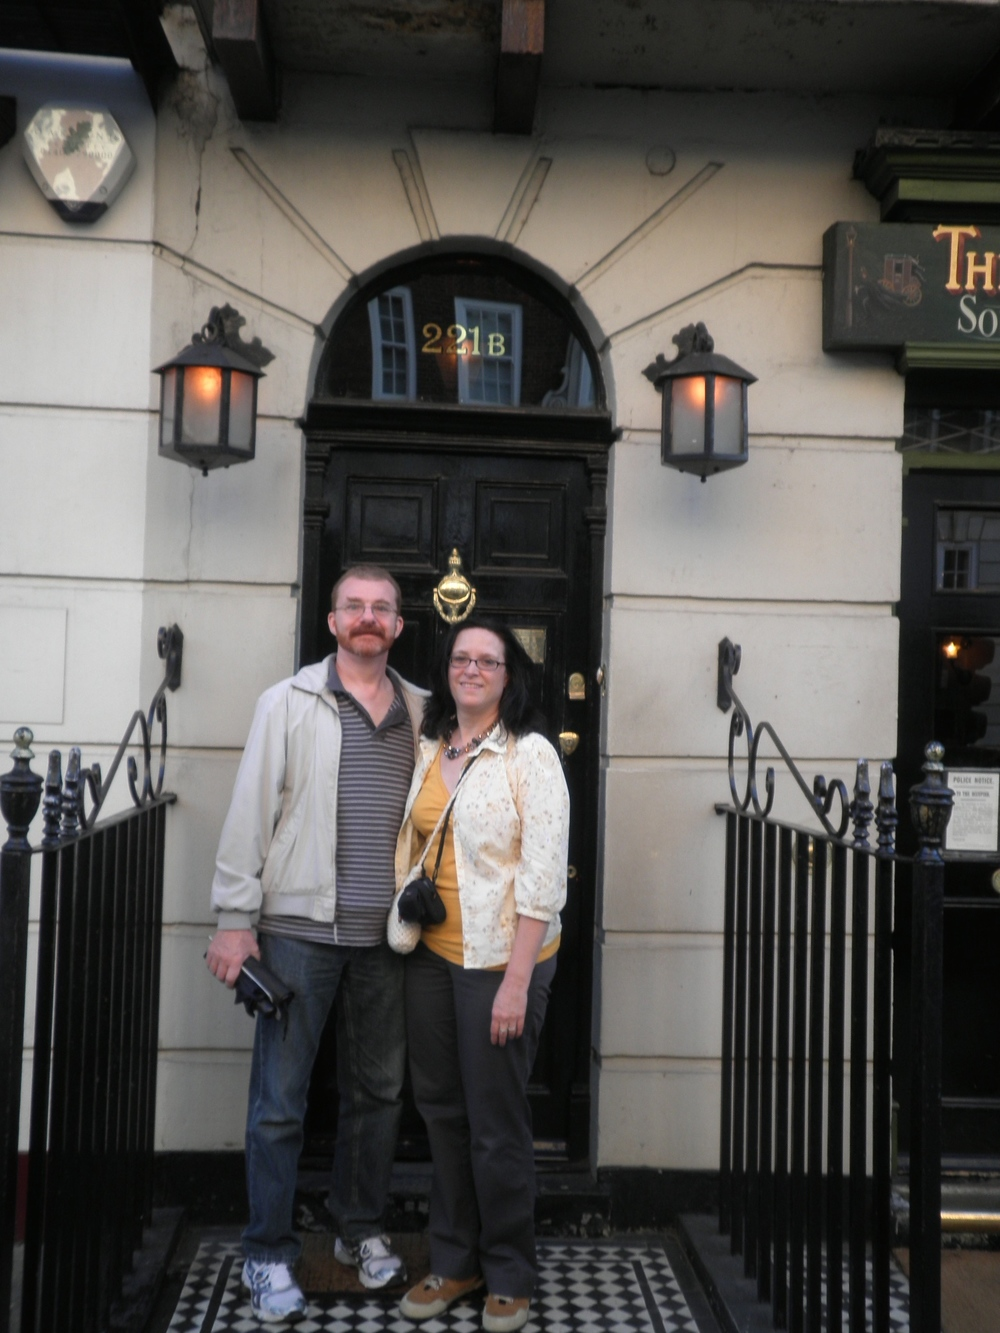 Hanging out with Sherlock Holmes, London 2012